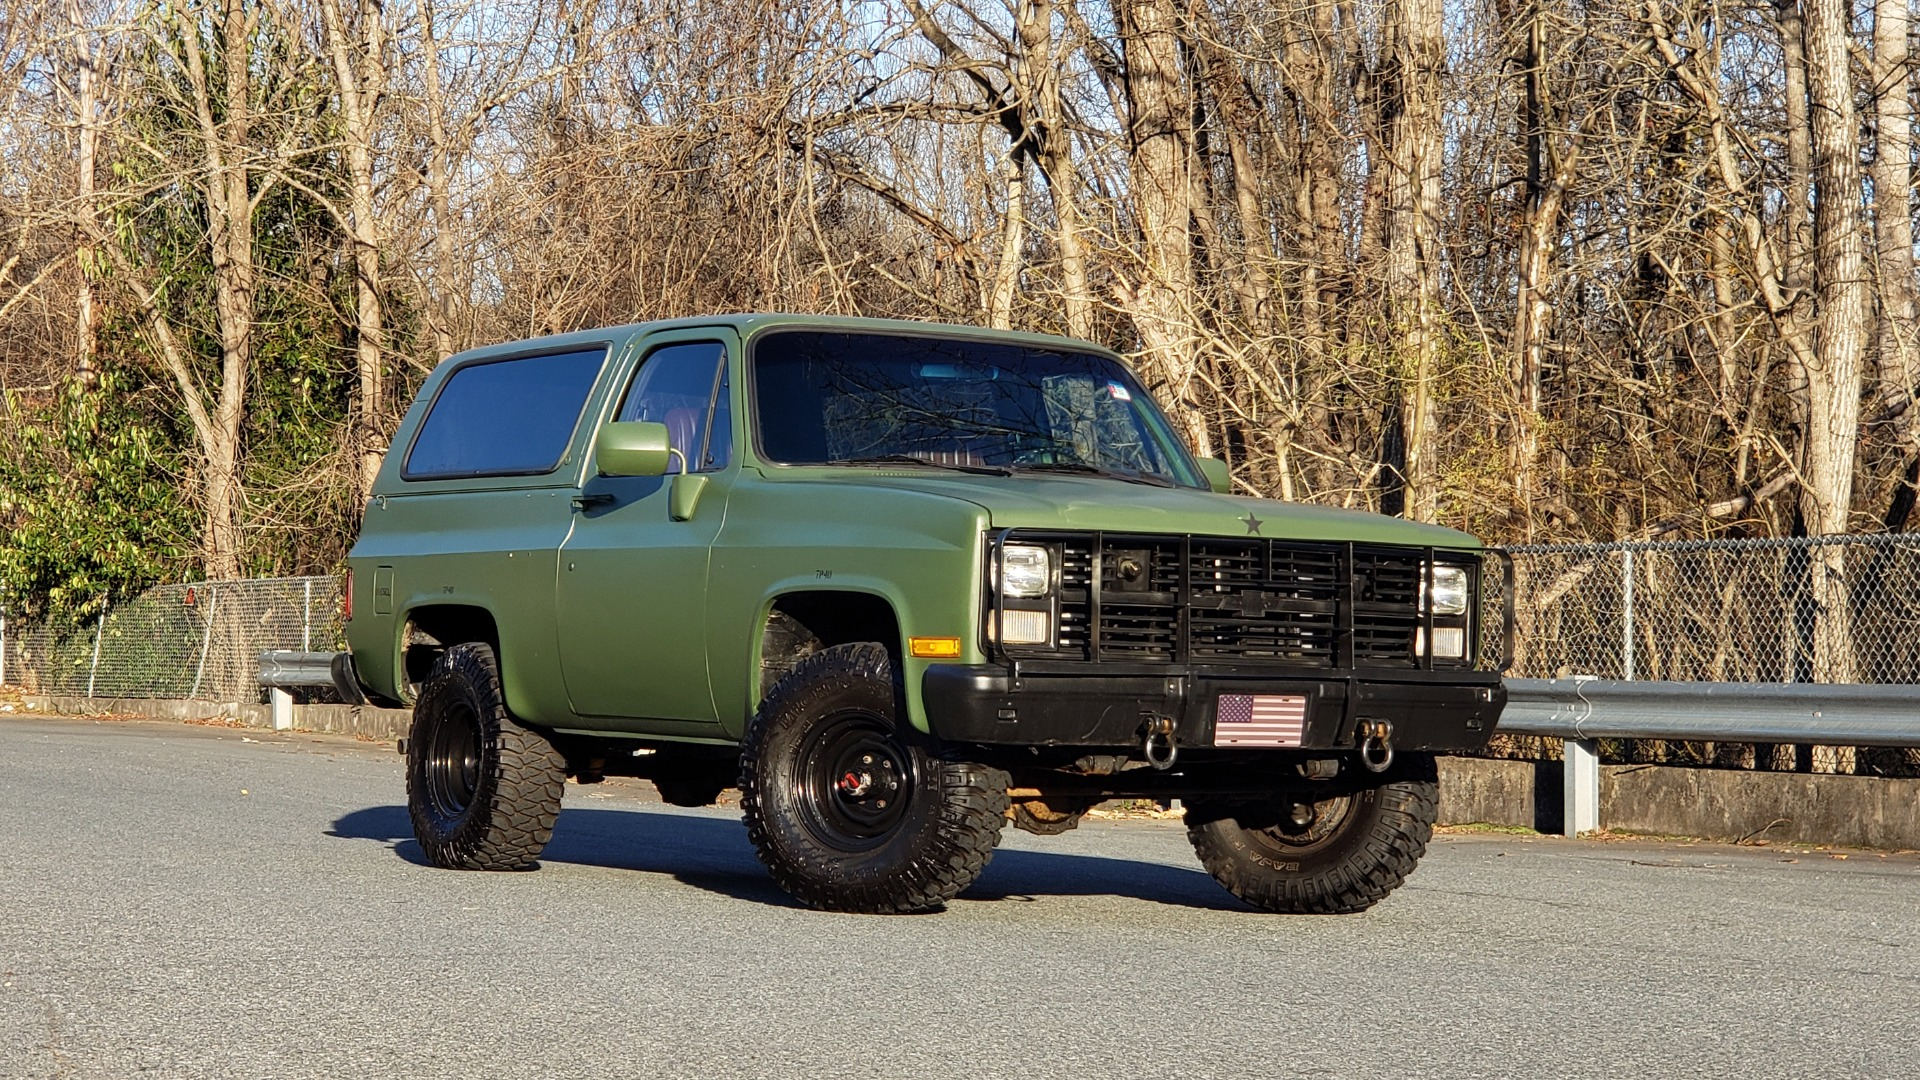 Used 1985 Chevrolet BLAZER D10 MILITARY SUV / 4X4 / 6.2L DIESEL V8 / VINTAGE AIR for sale $15,000 at Formula Imports in Charlotte NC 28227 7